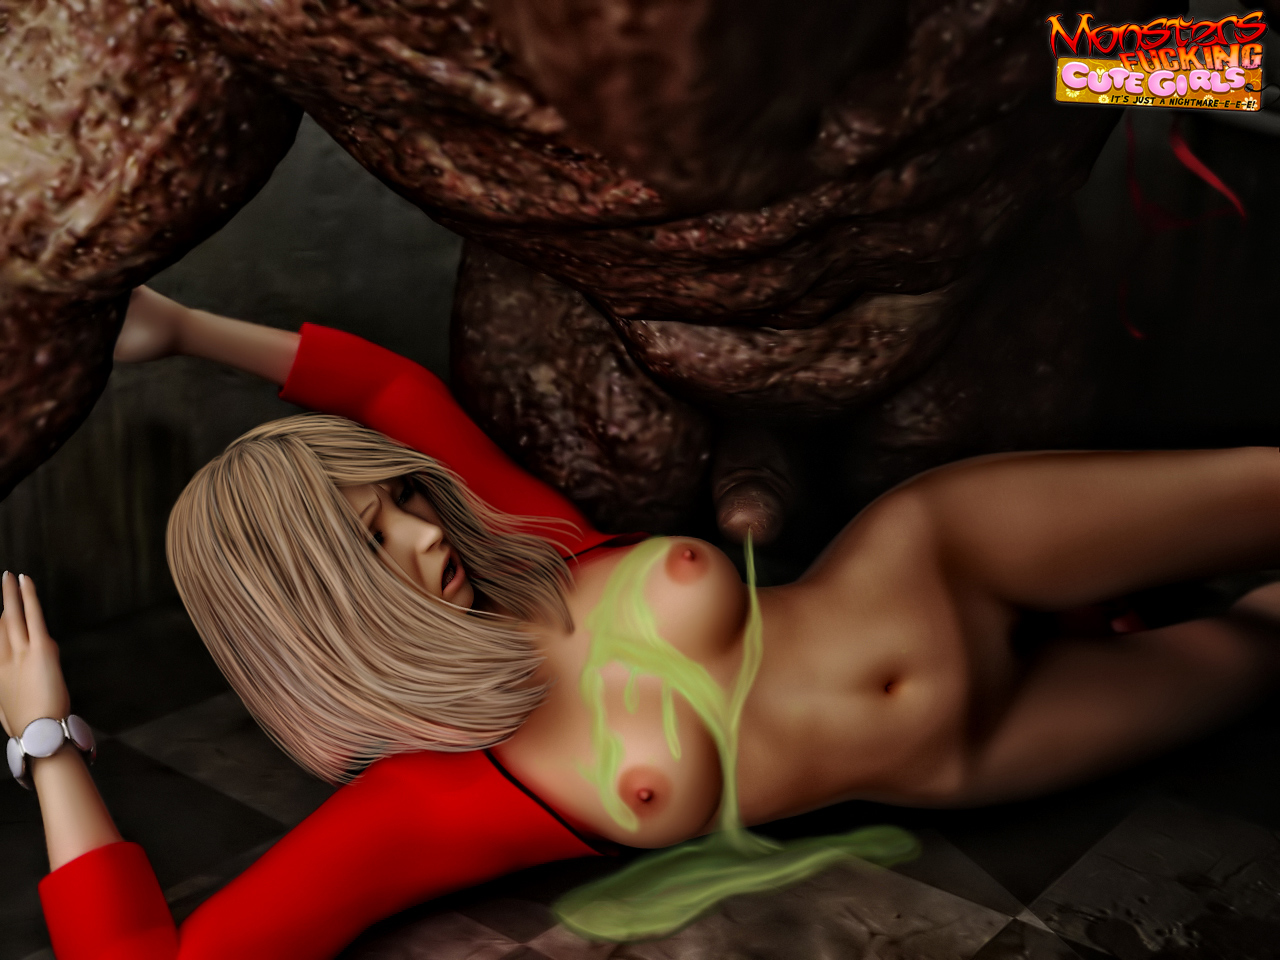 Toon monster sex 3gp xxx video